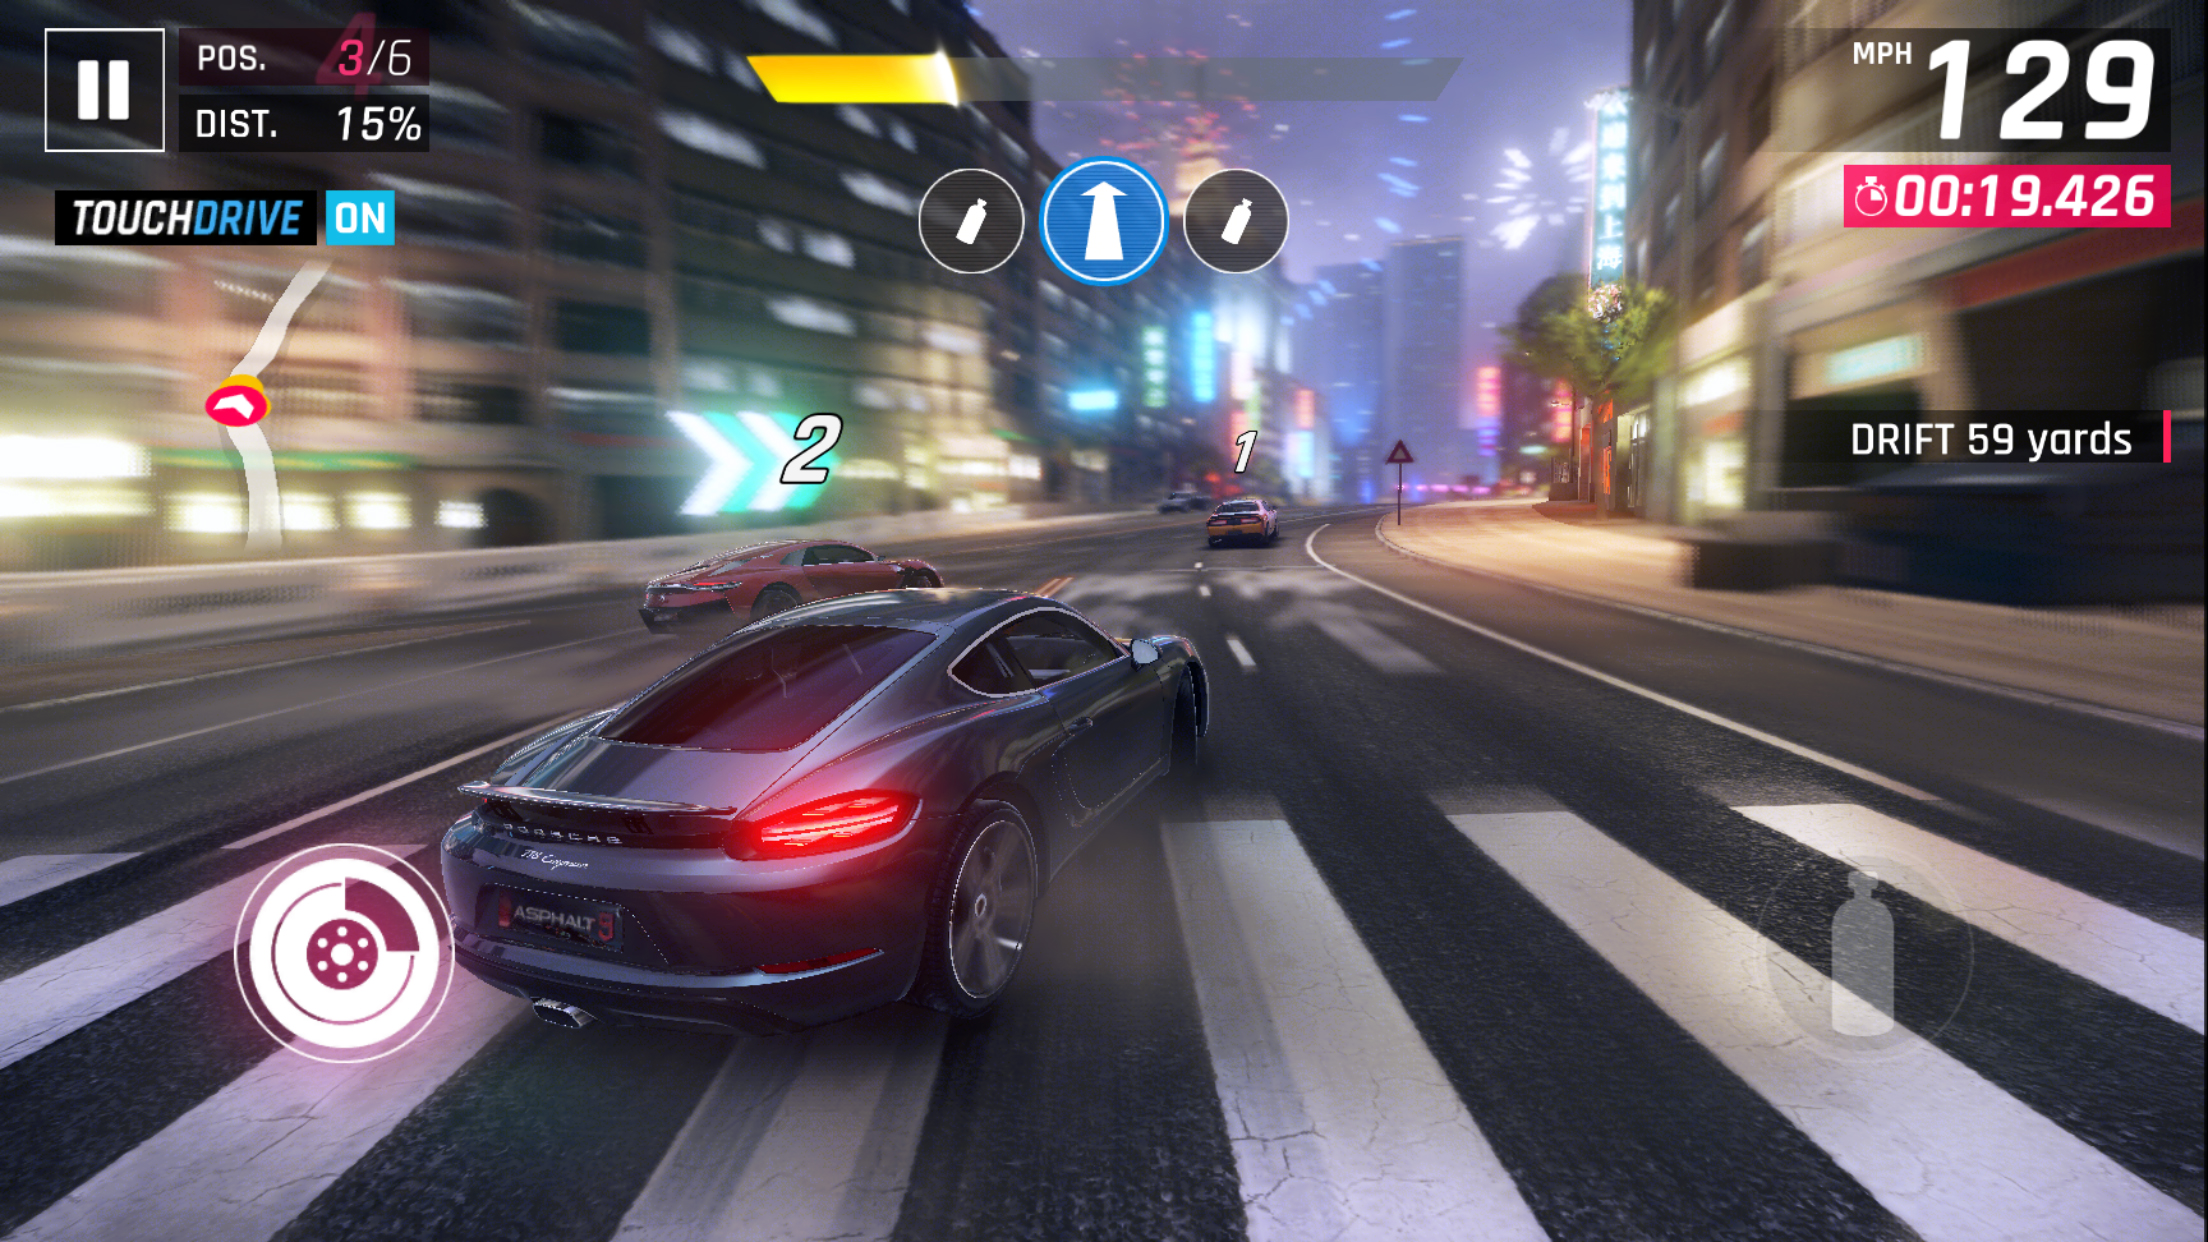 wXR6Ca4xt7tM9nR3bs5vSV - The best free Android games 2019